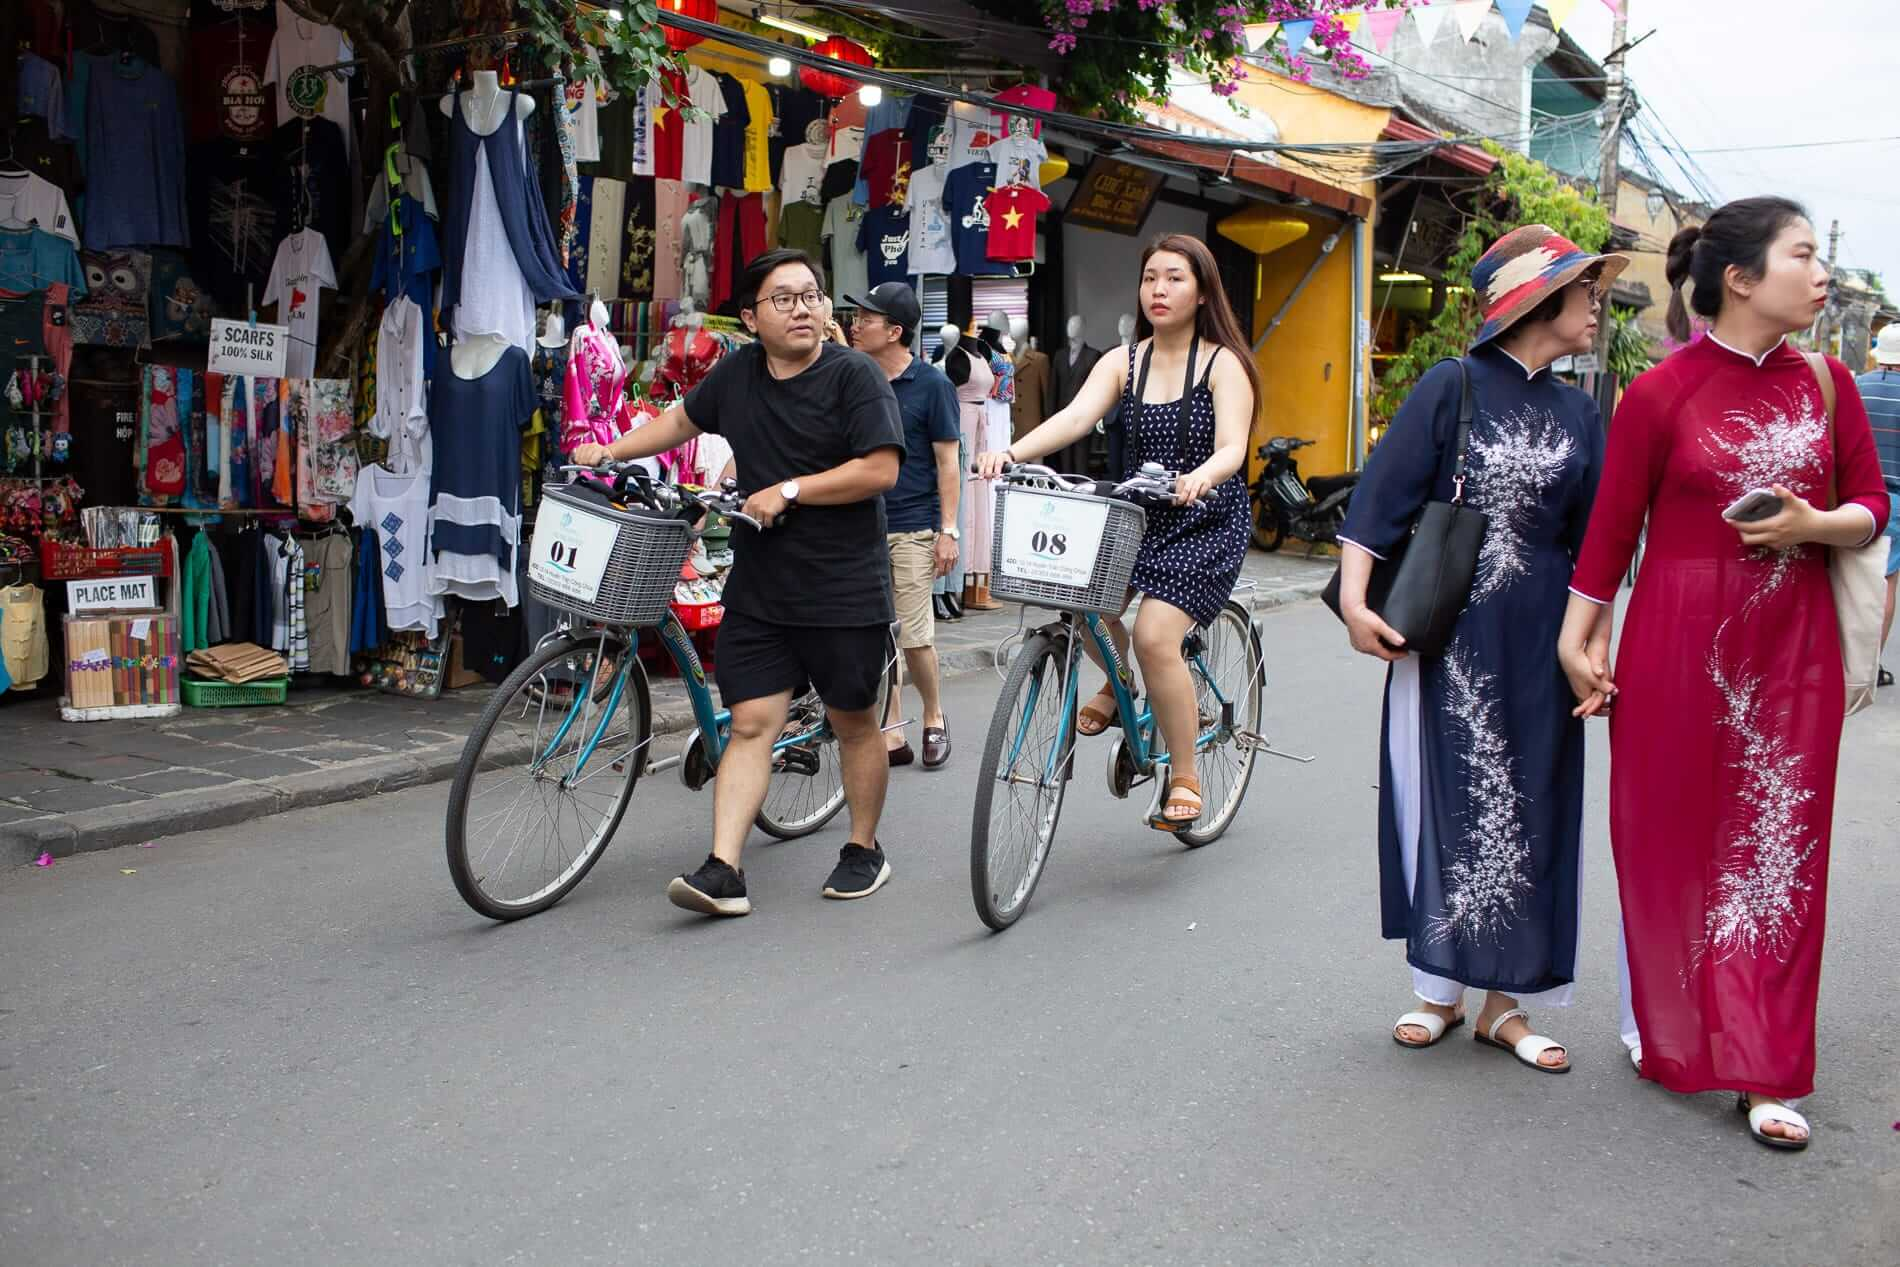 Cyclists and pedestrians sharing Hoi An